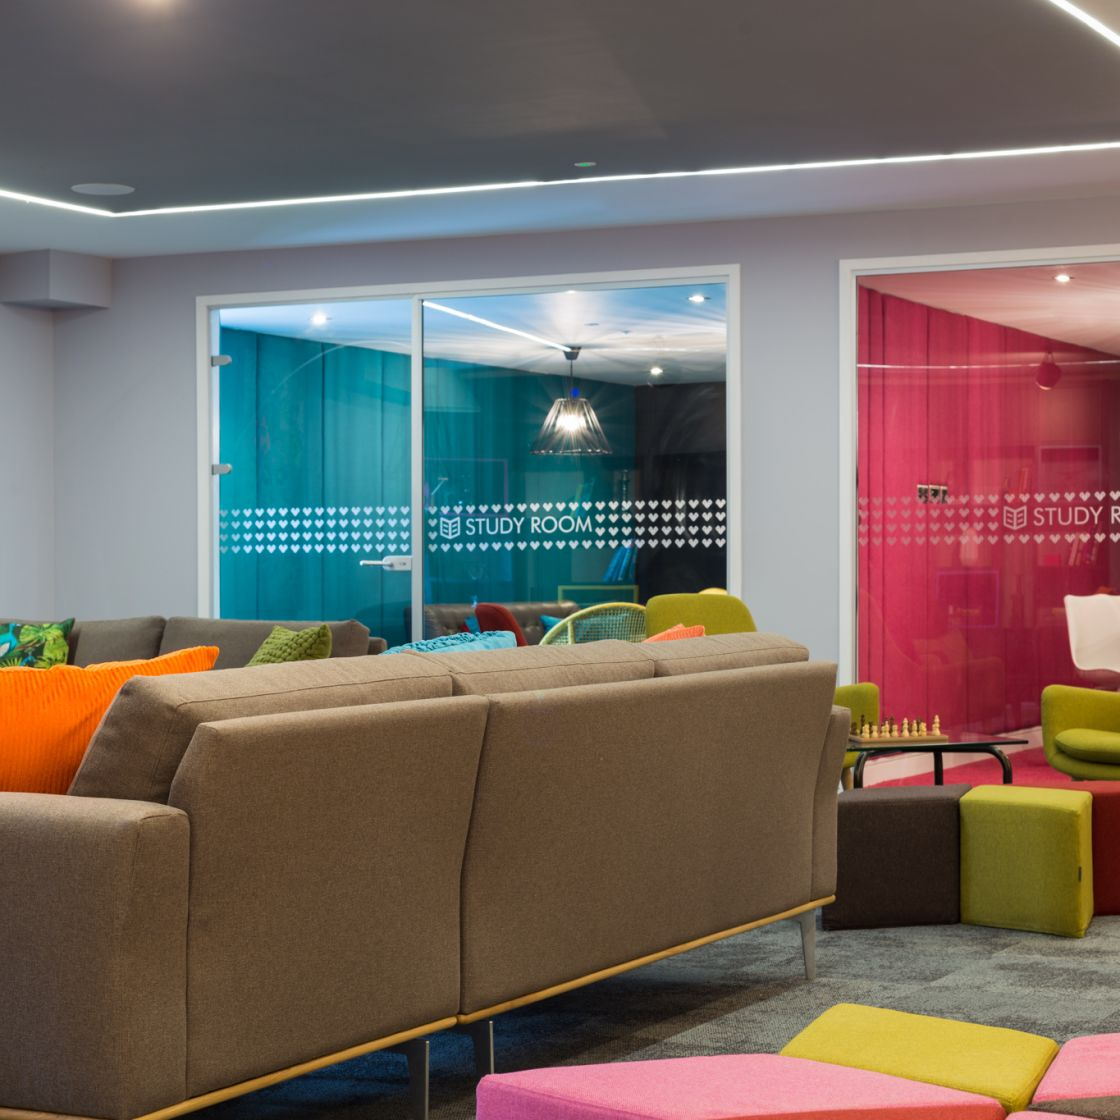 Reception and area with sofa and private study rooms at IconInc, The Glassworks. Student Accommodation in Leeds